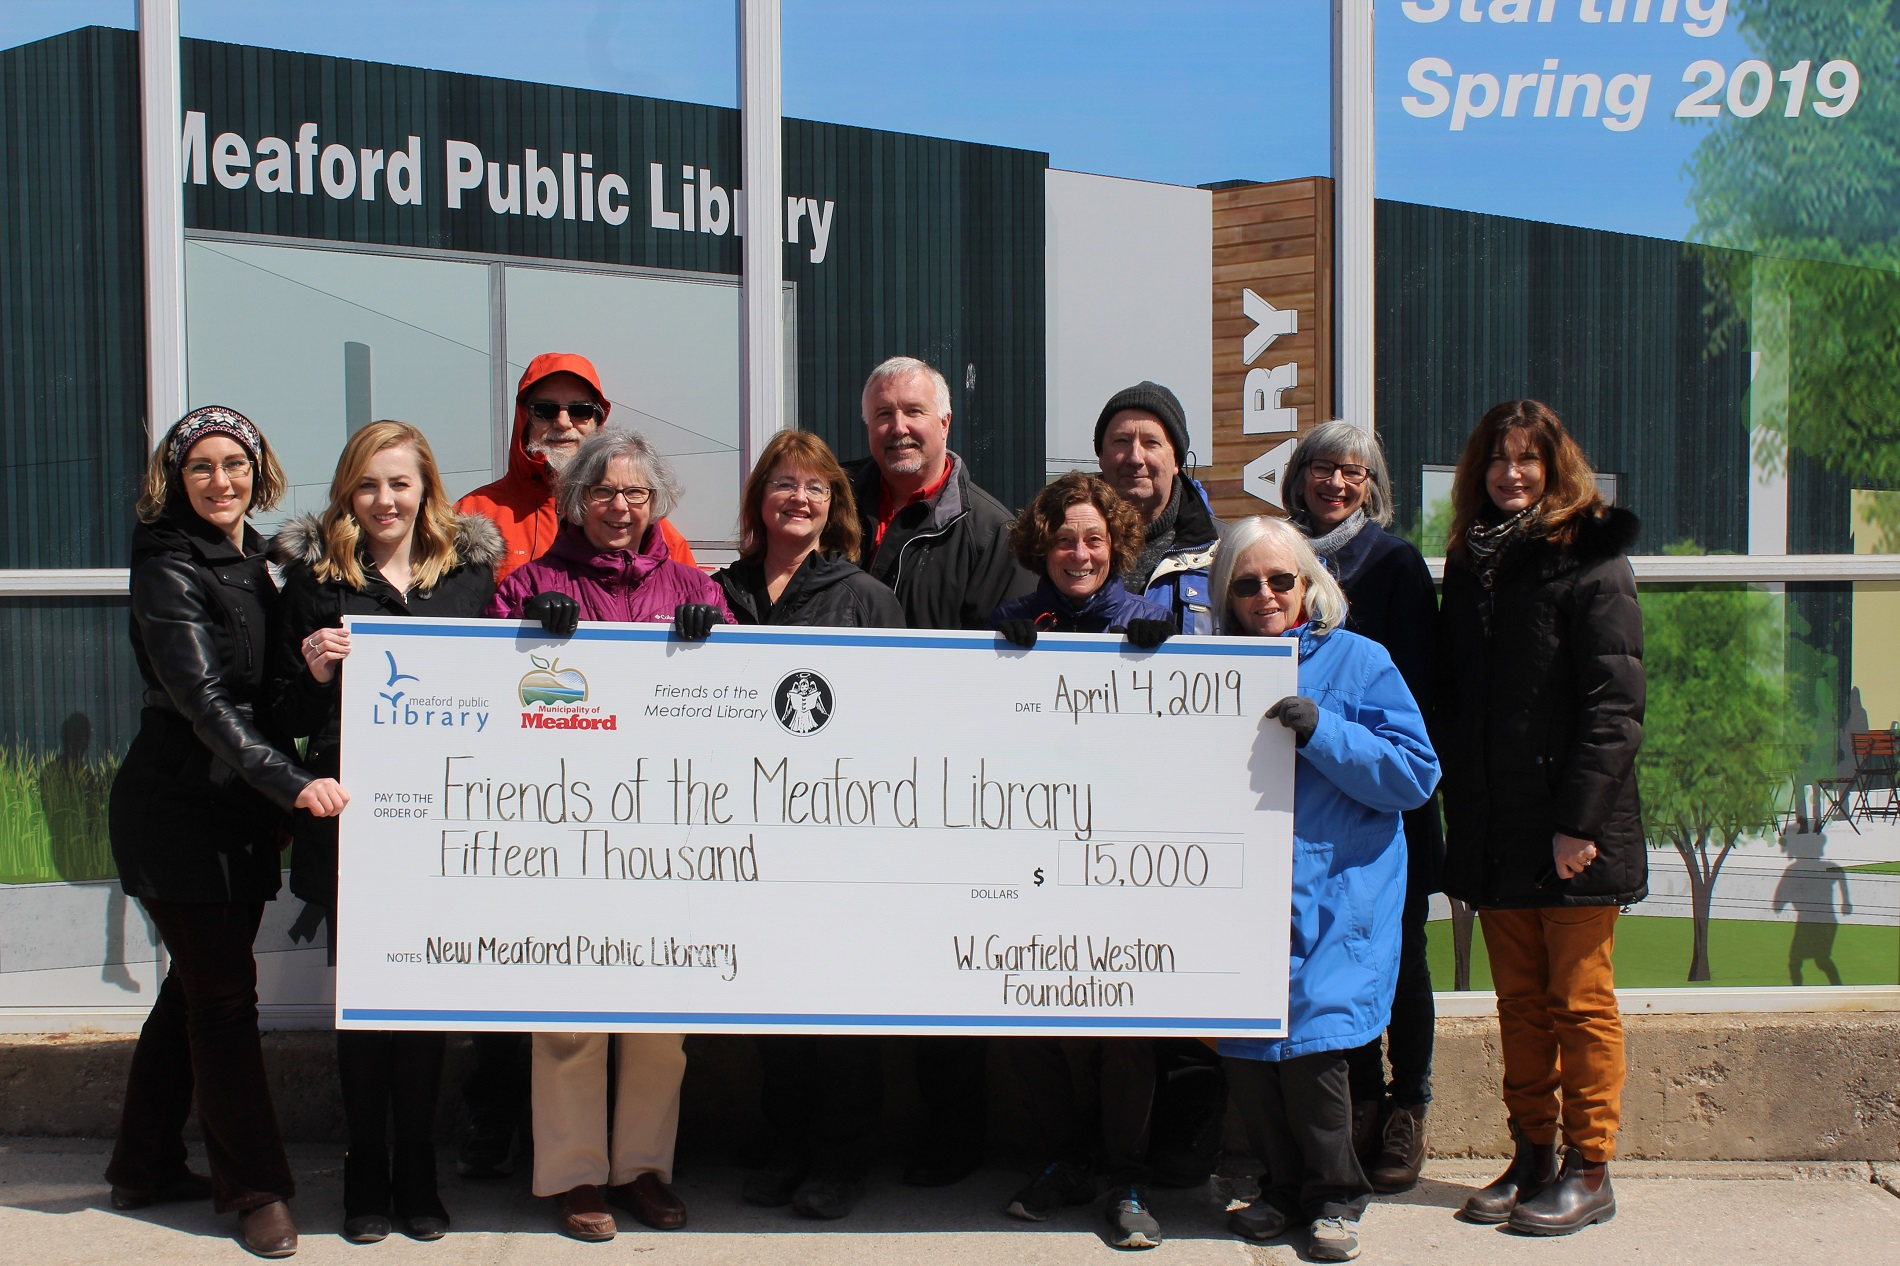 New Library receives $15,000 donation from the W. Garfield Weston Foundation